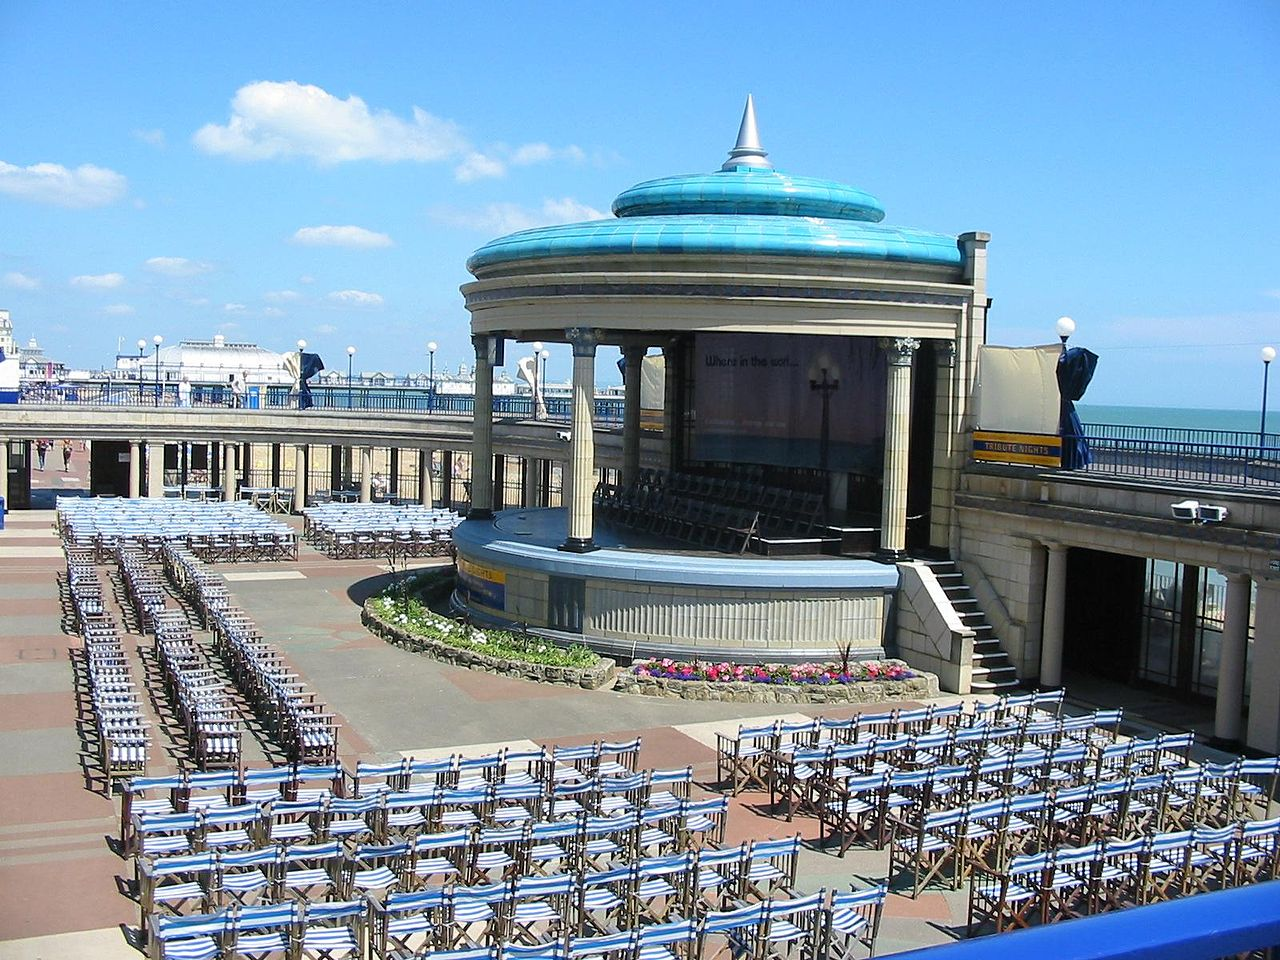 Photo: Eastbourne Bandstand By Oakie102 via Wikimedia Commons (public domain) https://commons.wikimedia.org/wiki/File:Eastbourne_Bandstand_2006.jpg  ★画像使用記事 『刑事フォイル』 http://inagara.octsky.net/keiji-foyle